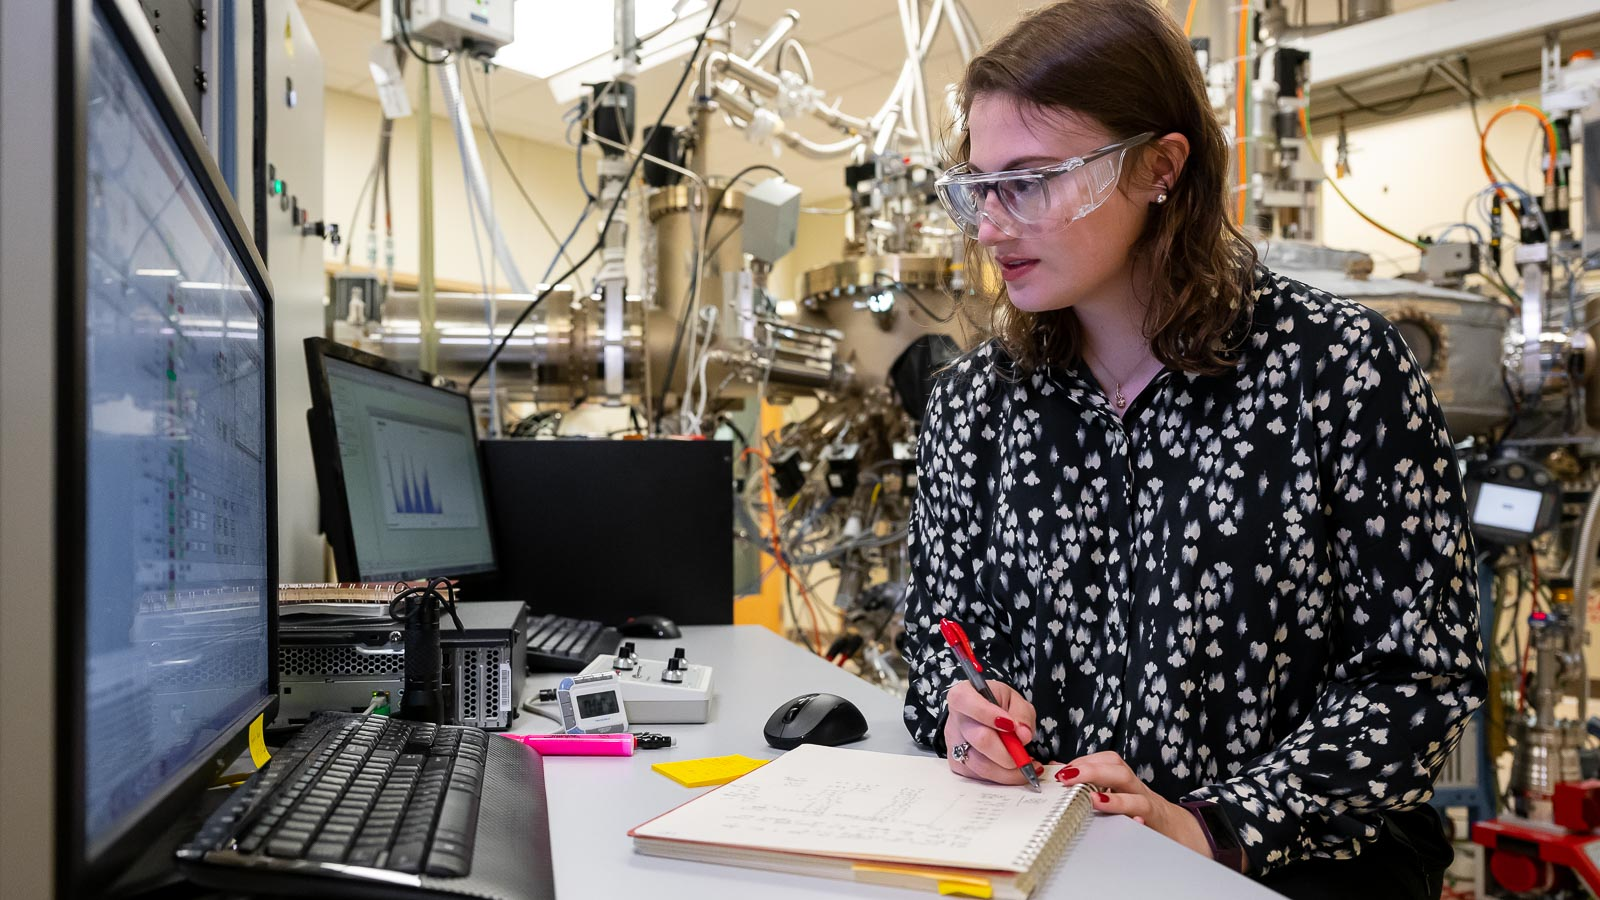 Katie Sautter is a postdoctoral researcher in Supratik Guha's lab at Argonne National Laboratory. She builds materials for quantum devices using a molecular beam epitaxy machine. (Image by Argonne National Laboratory.)